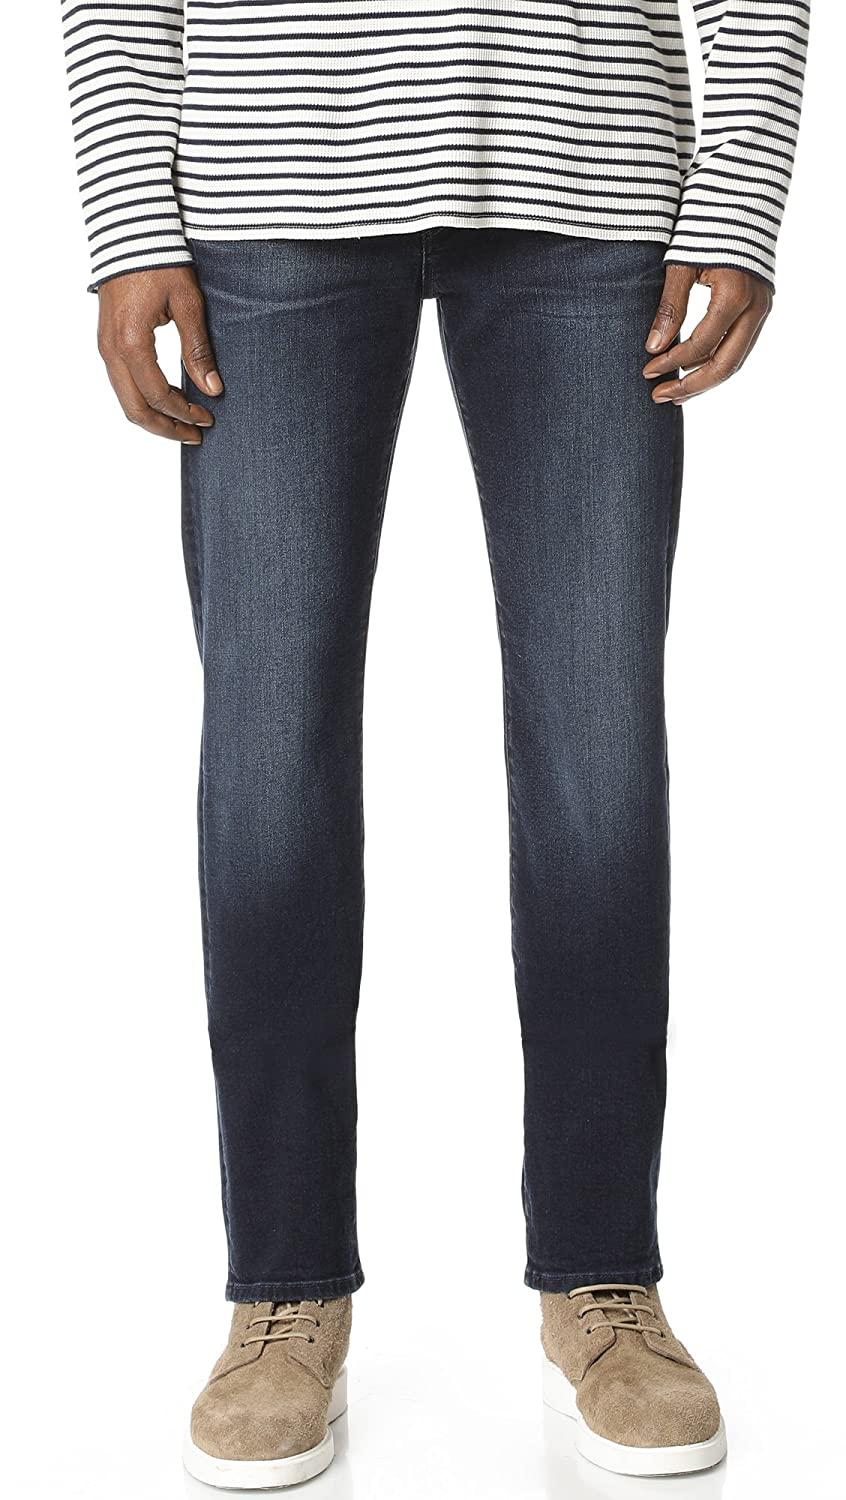 7 For All Mankind Men's Slim Straight Performance Jeans